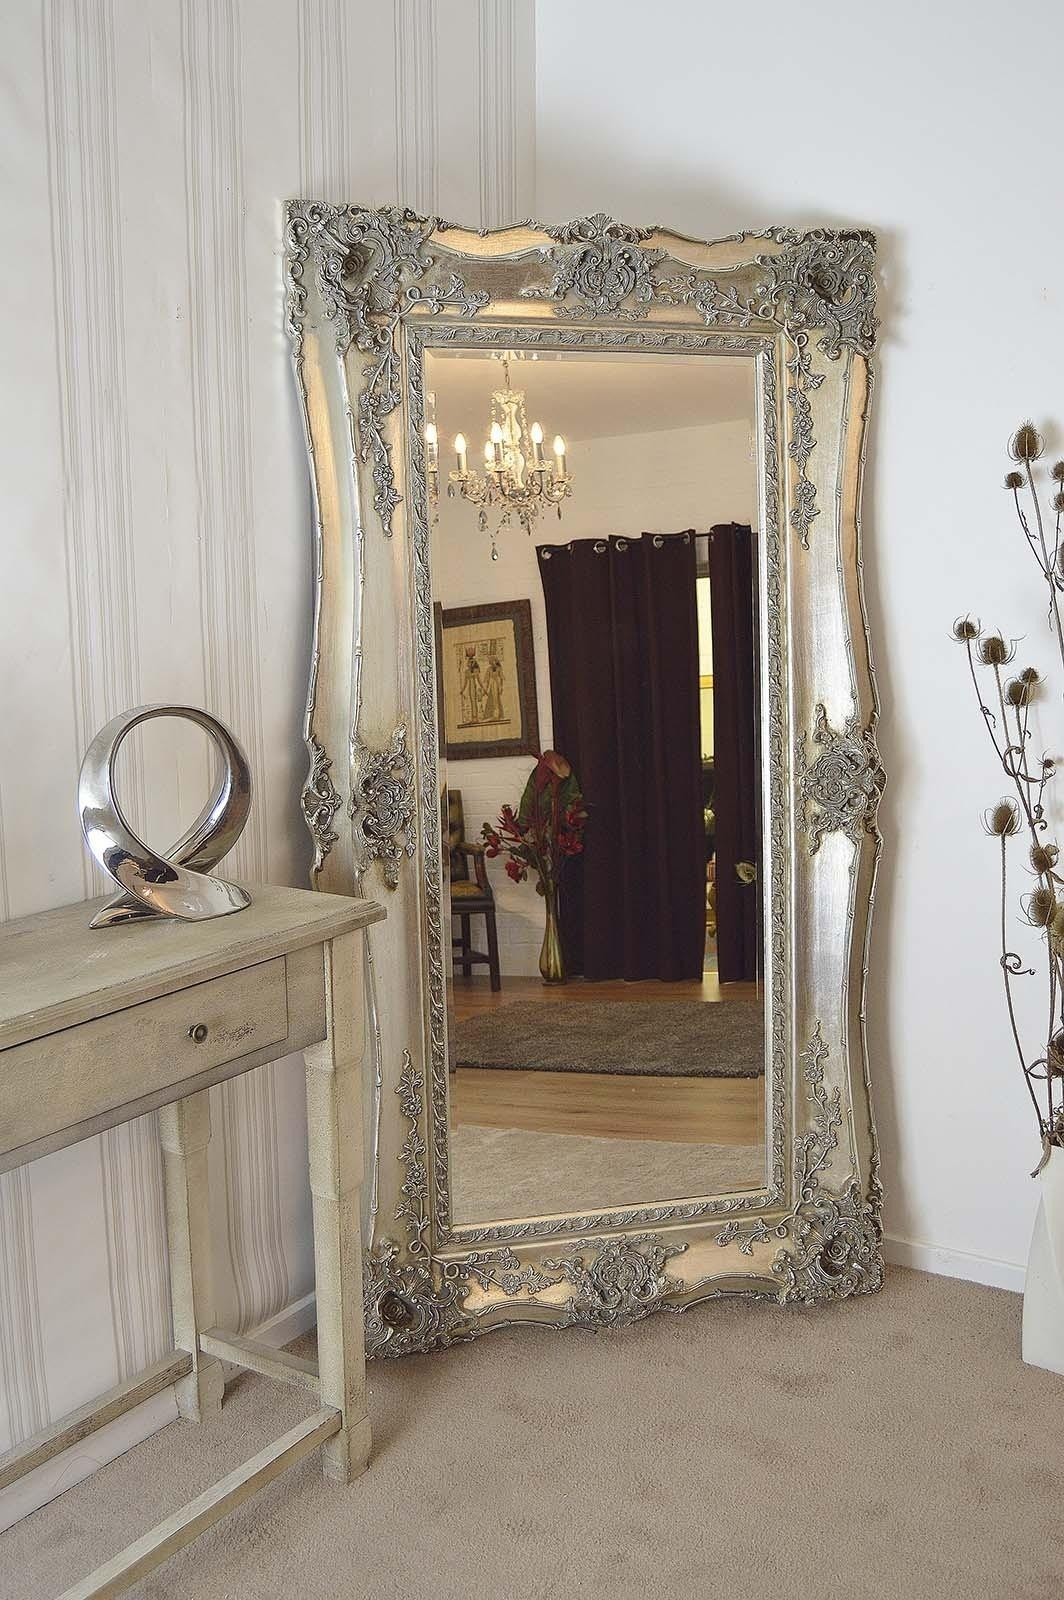 Bedroom Furniture : Large Gold Mirror Free Standing Mirror Wooden Pertaining To Extra Large Gold Mirror (View 4 of 20)